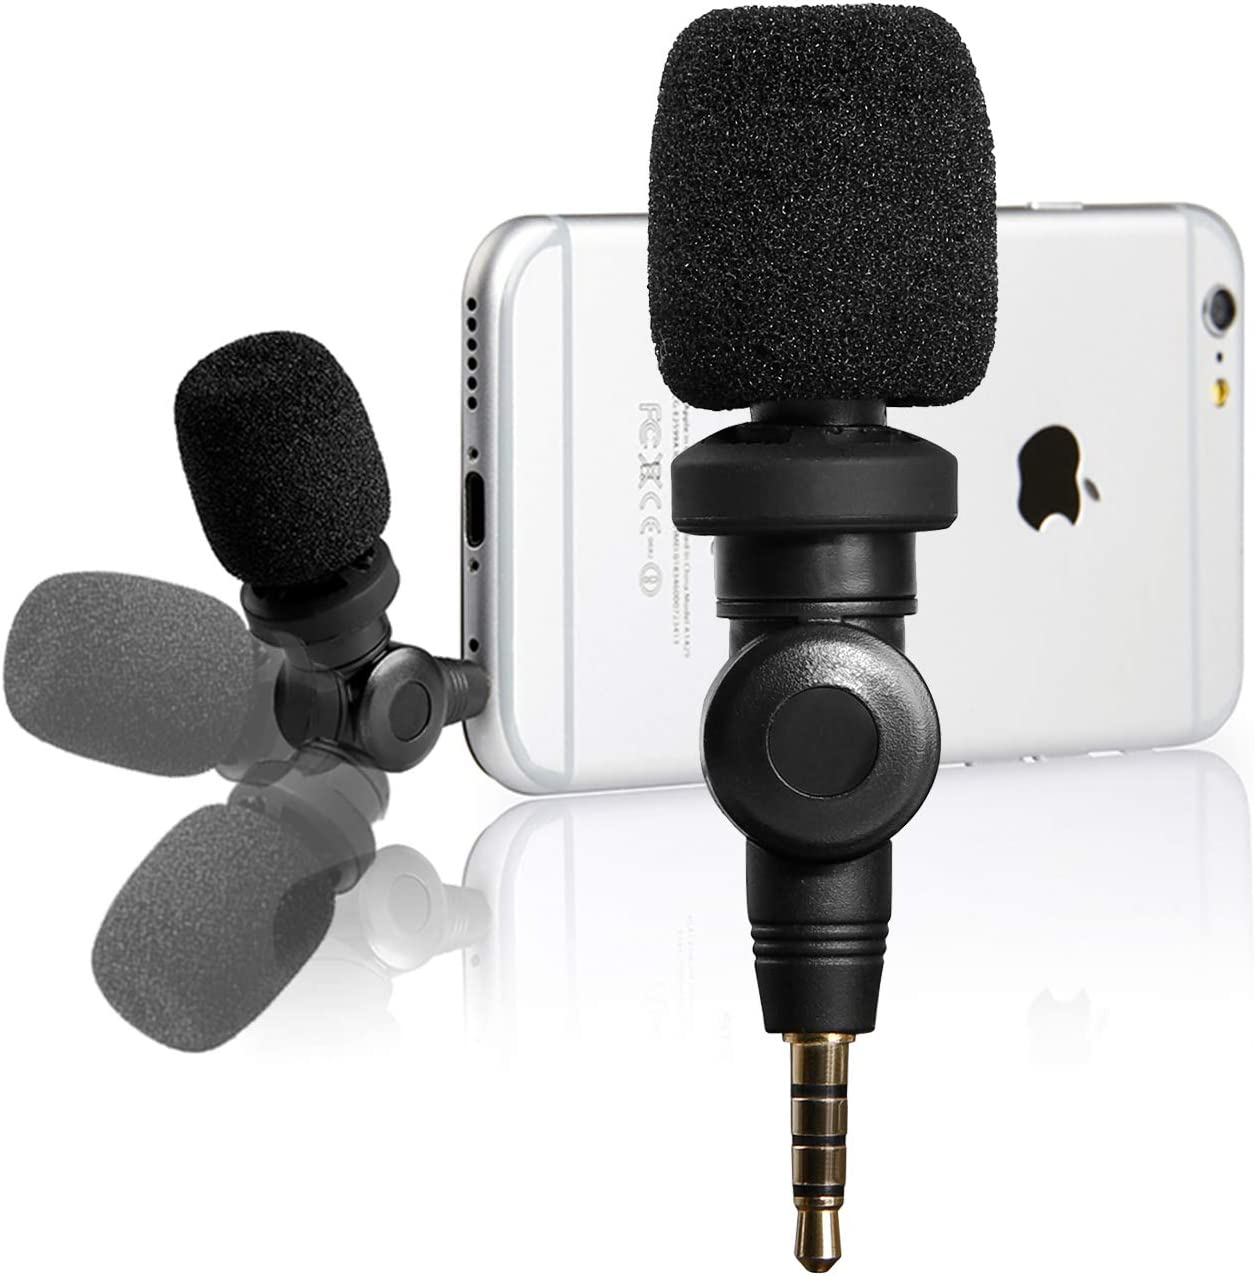 Amazon Com Flexible Condenser Microphone For Iphone 11 Vlog Saramonic Mic With High Sensitivity For Apple Ios Iphone X 8 7 6 Ipad Podcast Youtube Facebook Livestream 3 5mm Trrs Musical Instruments